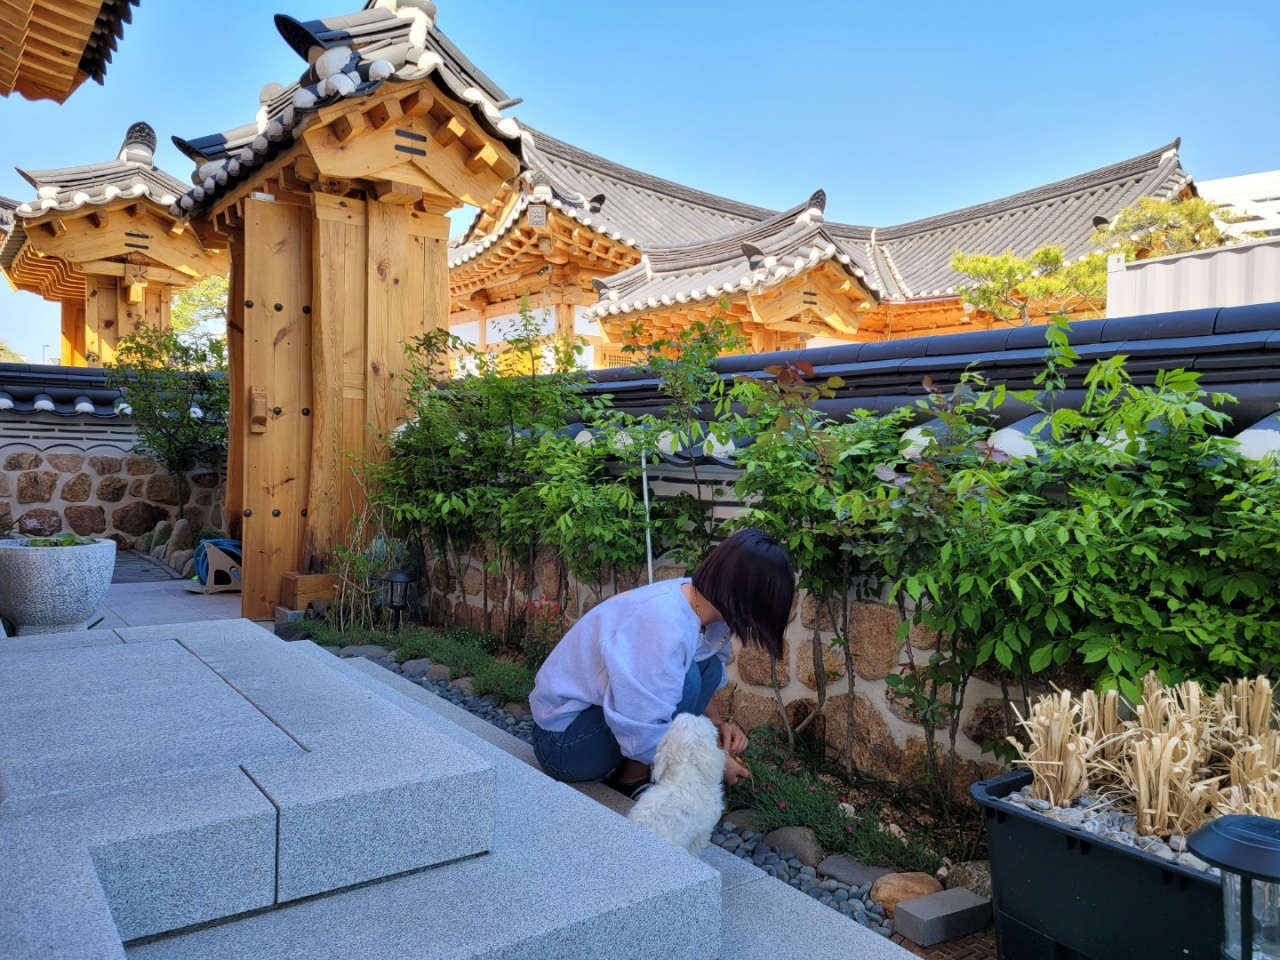 A resident of the hanok town in Sejong City trims plants at her house. (Park Yuna/The Korea Herald)